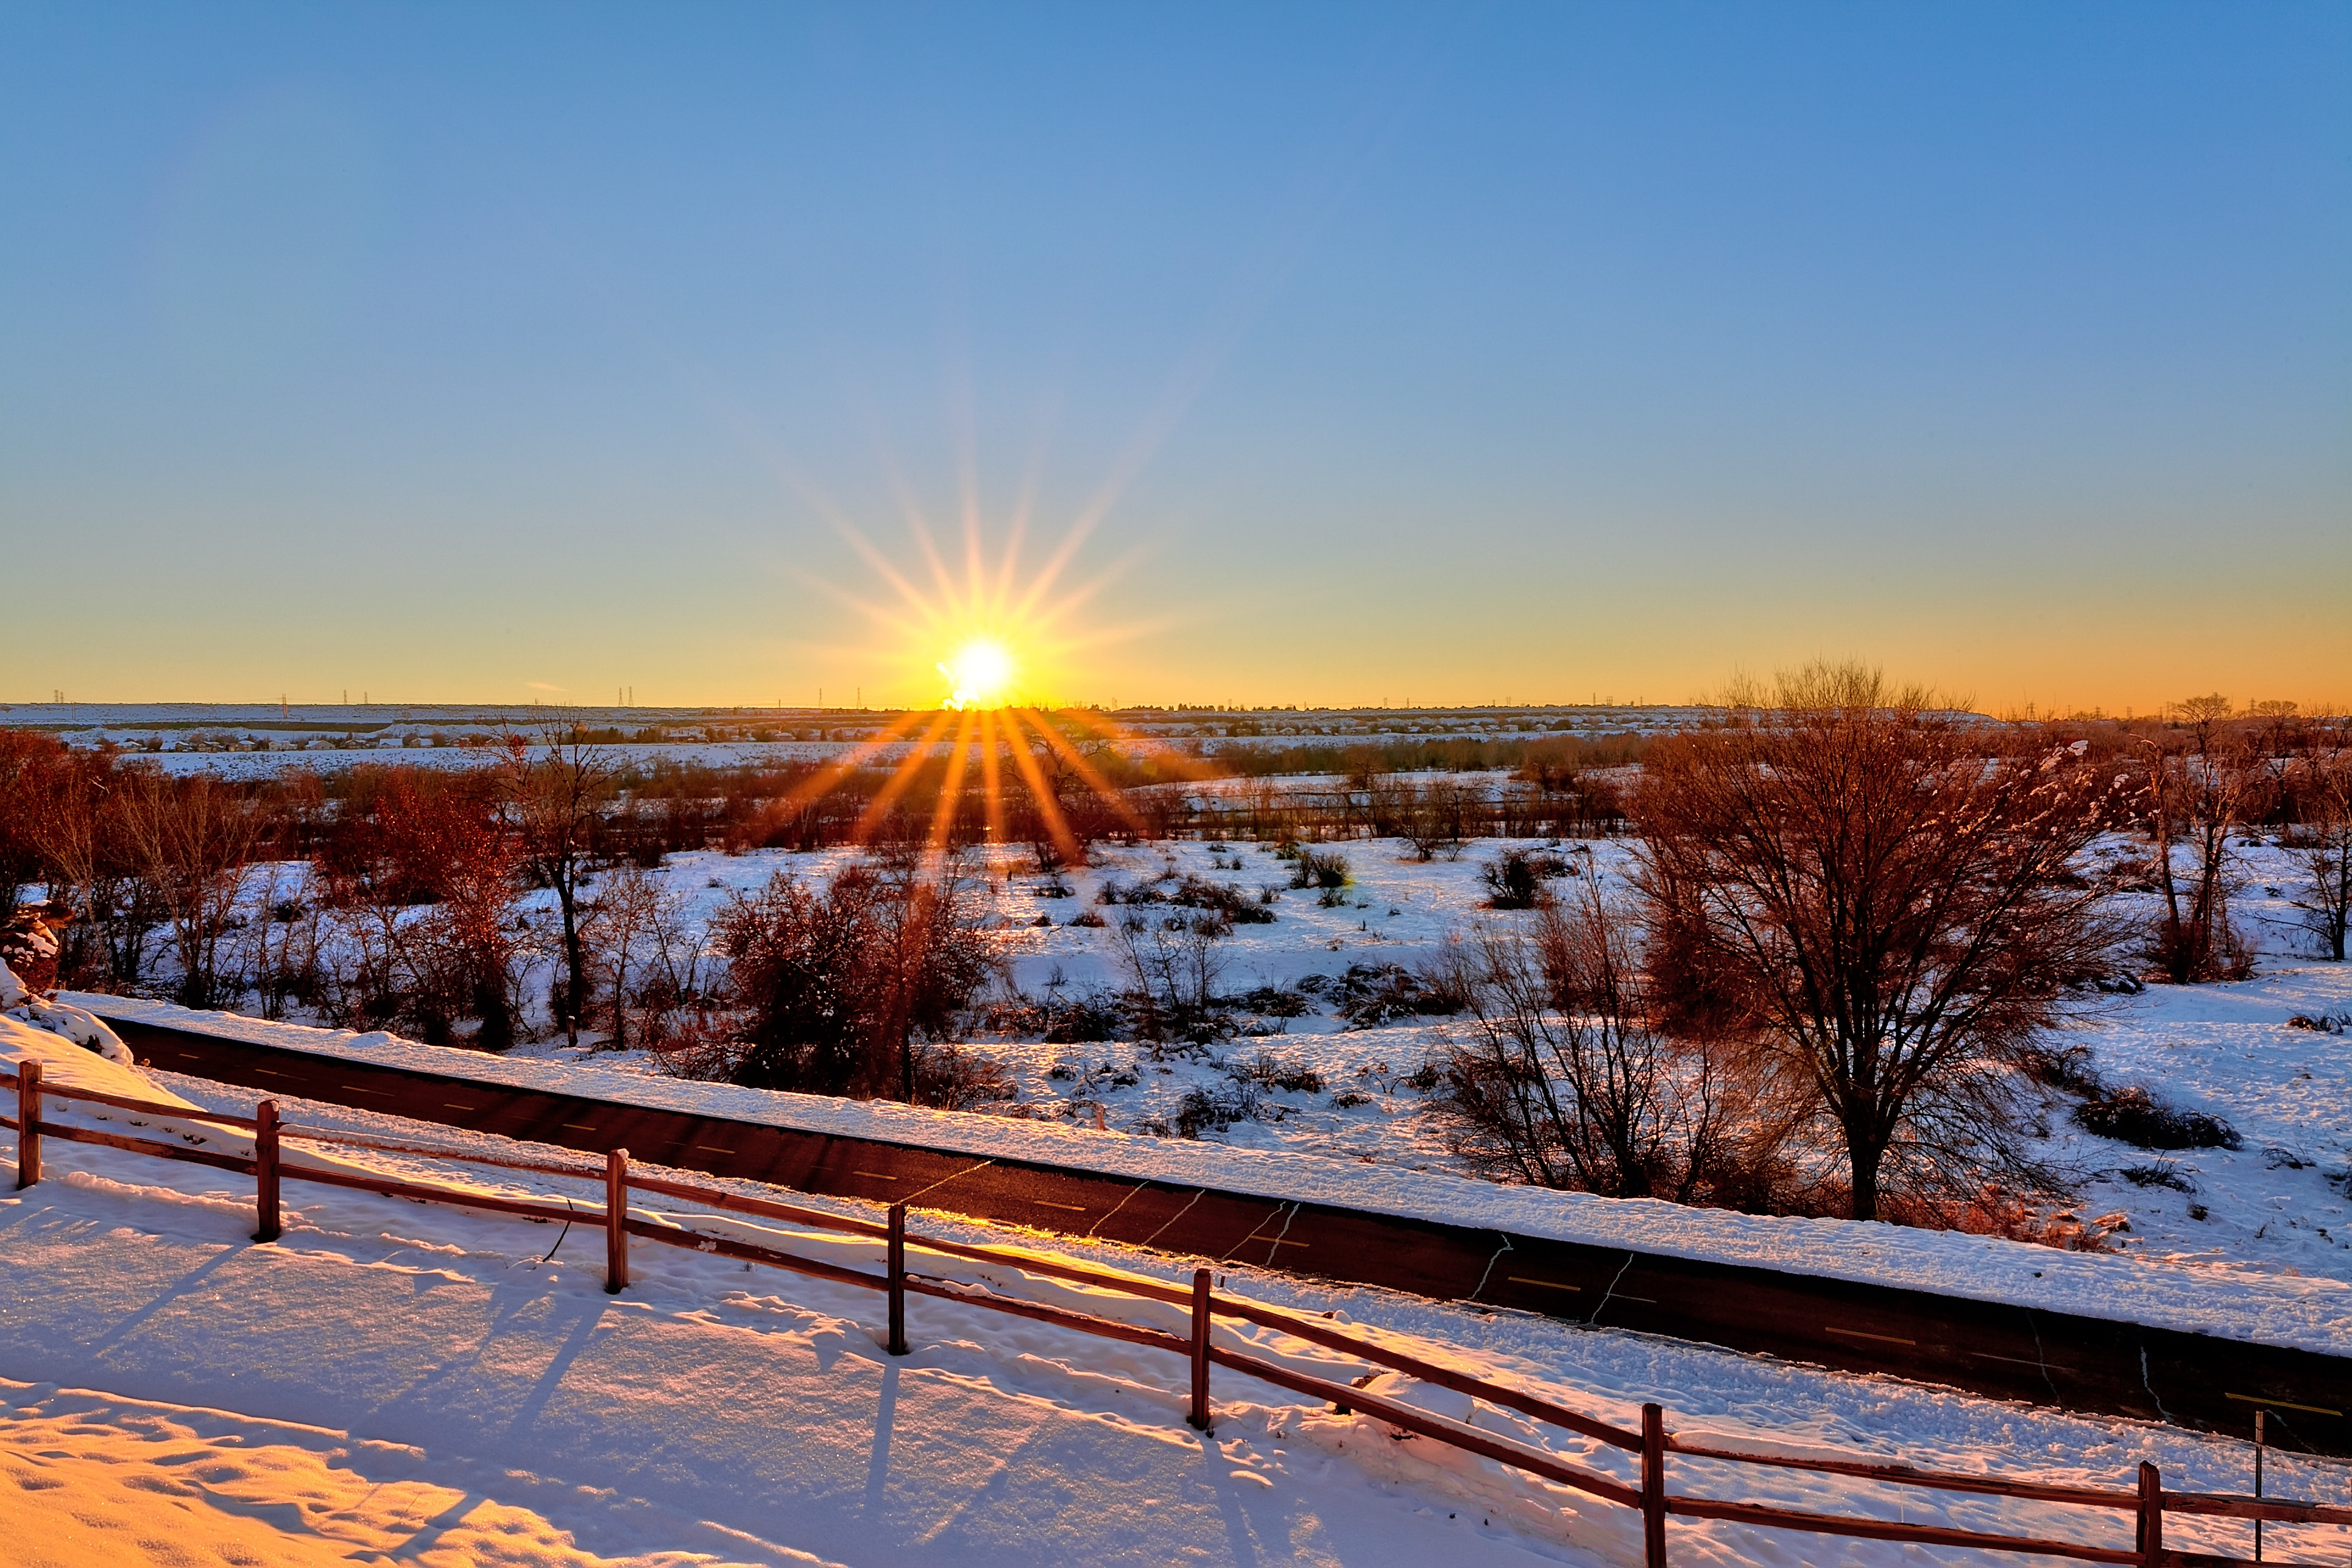 Photo of a peaceful valley covered in snow, with the sun setting in the distance.